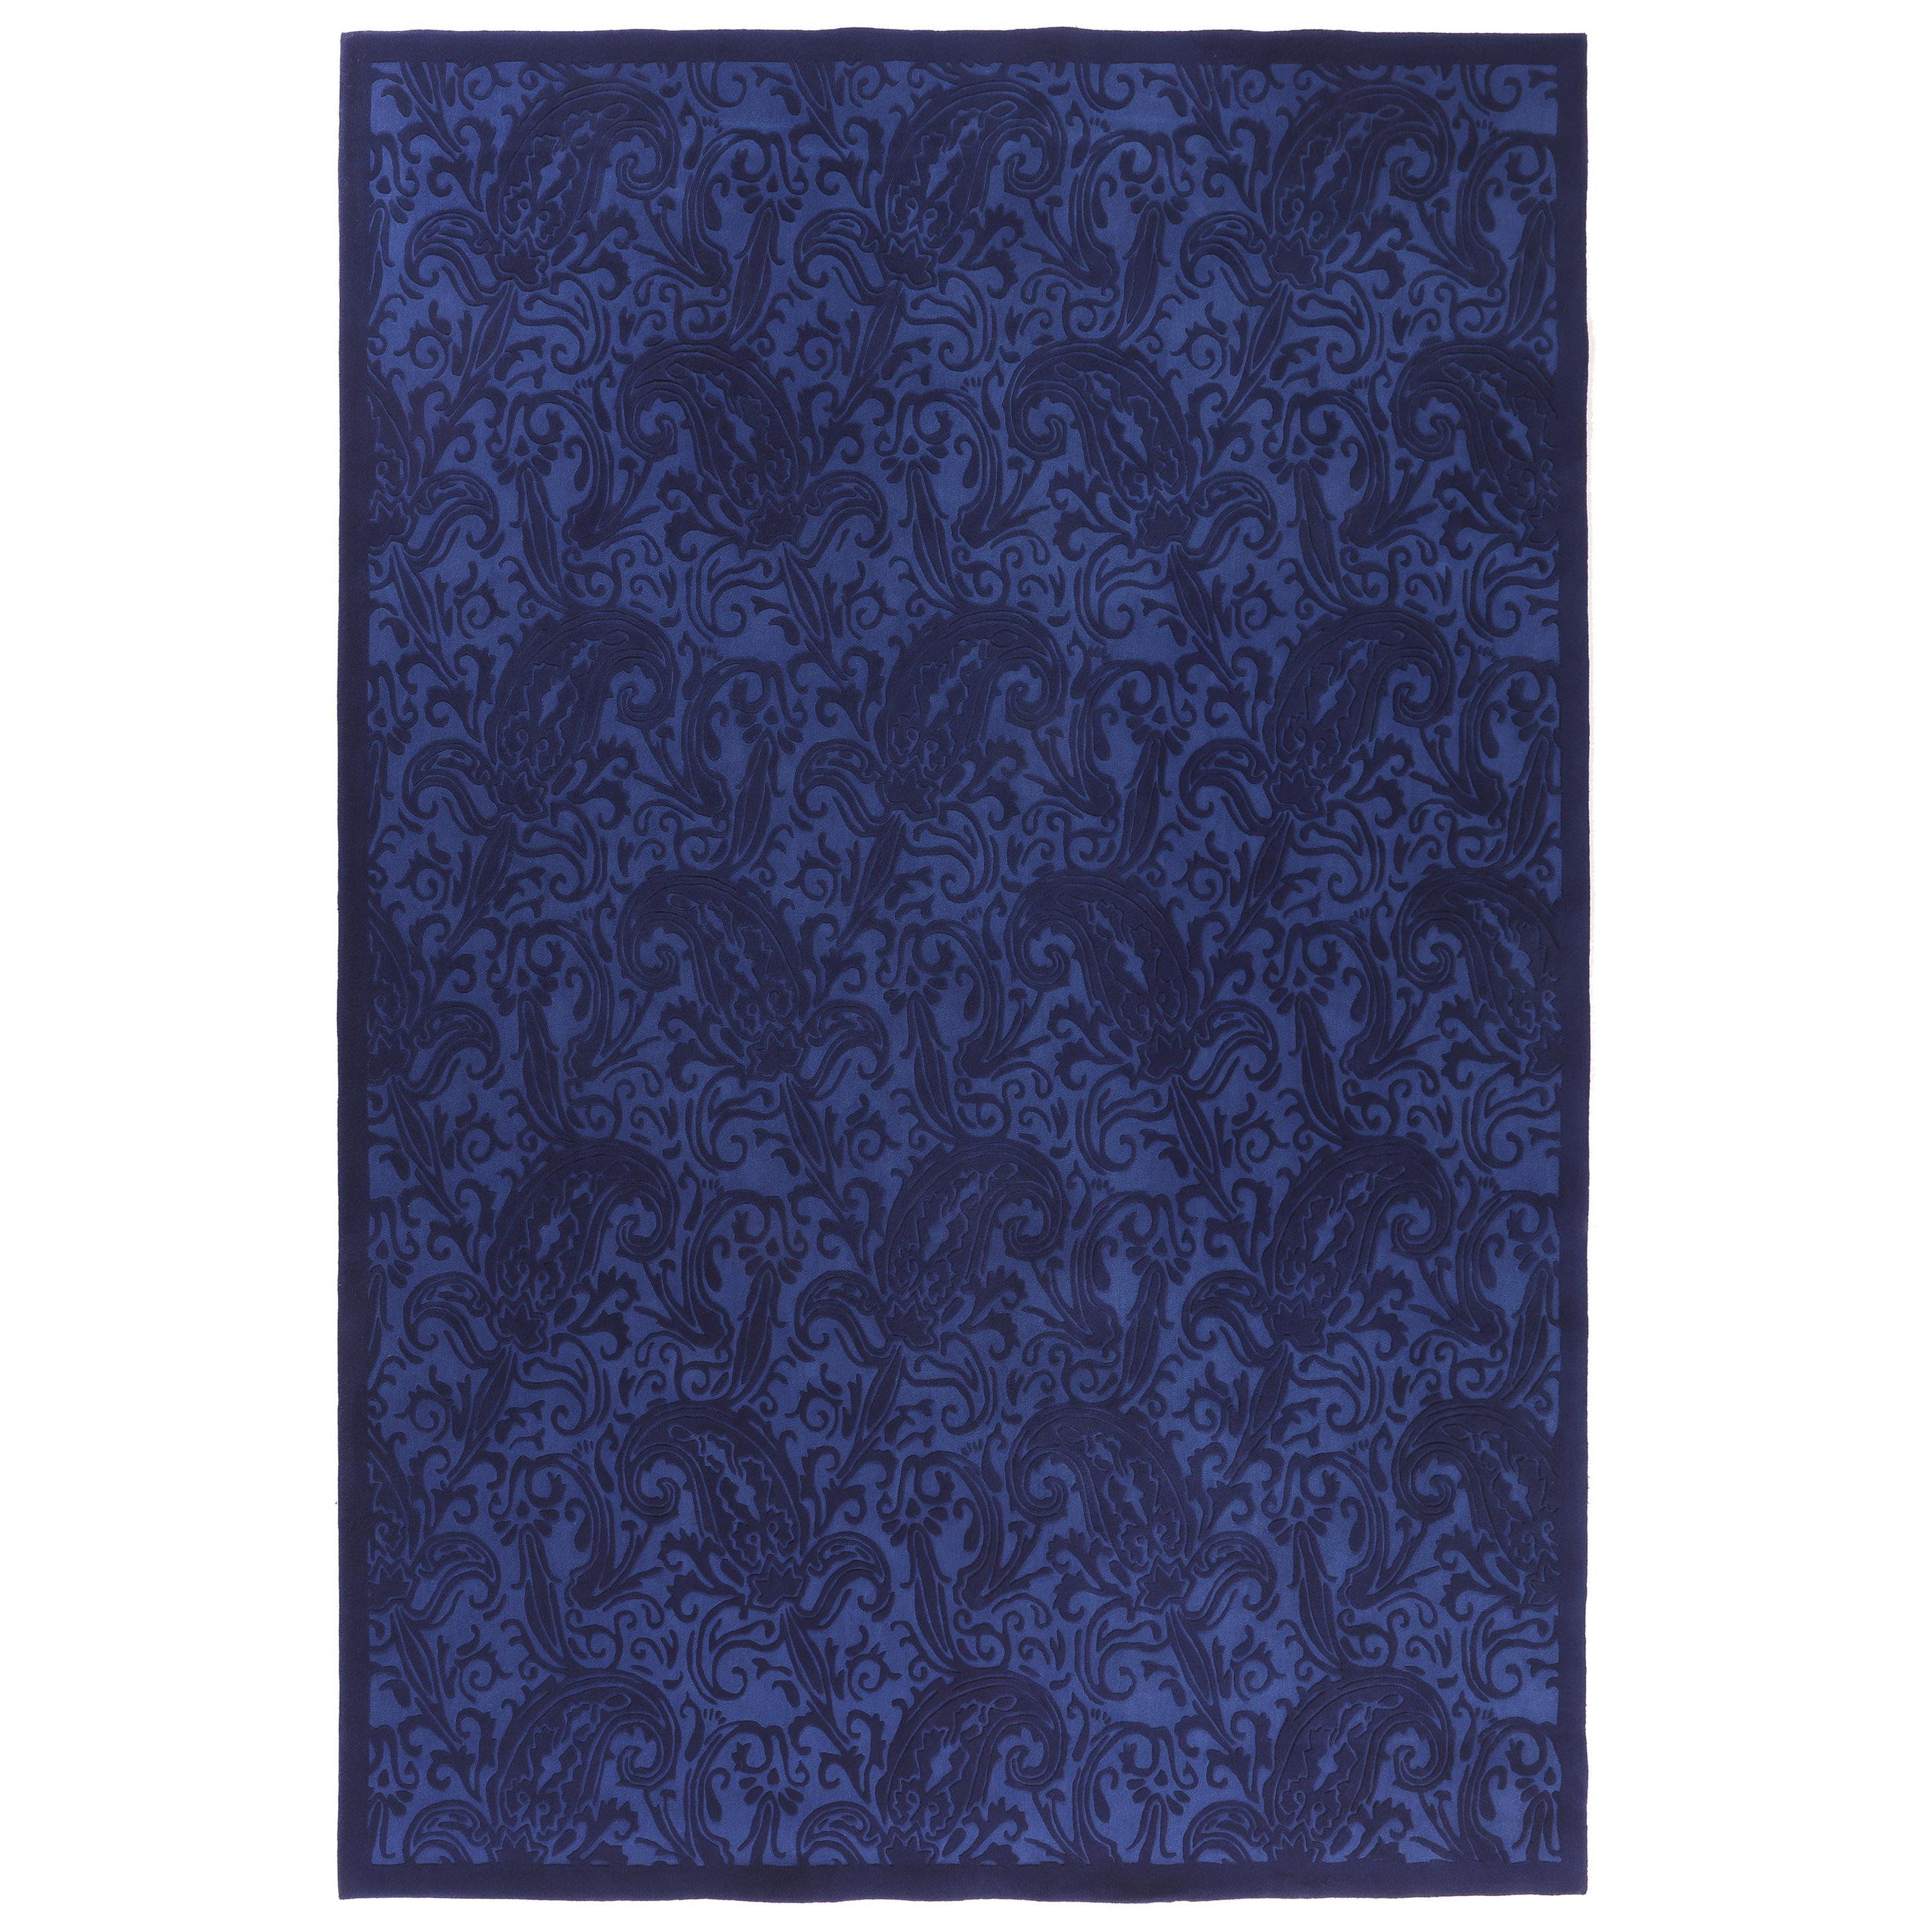 Etro Home Interiors Hendrix Hand-Tufted Rug in Blue Color